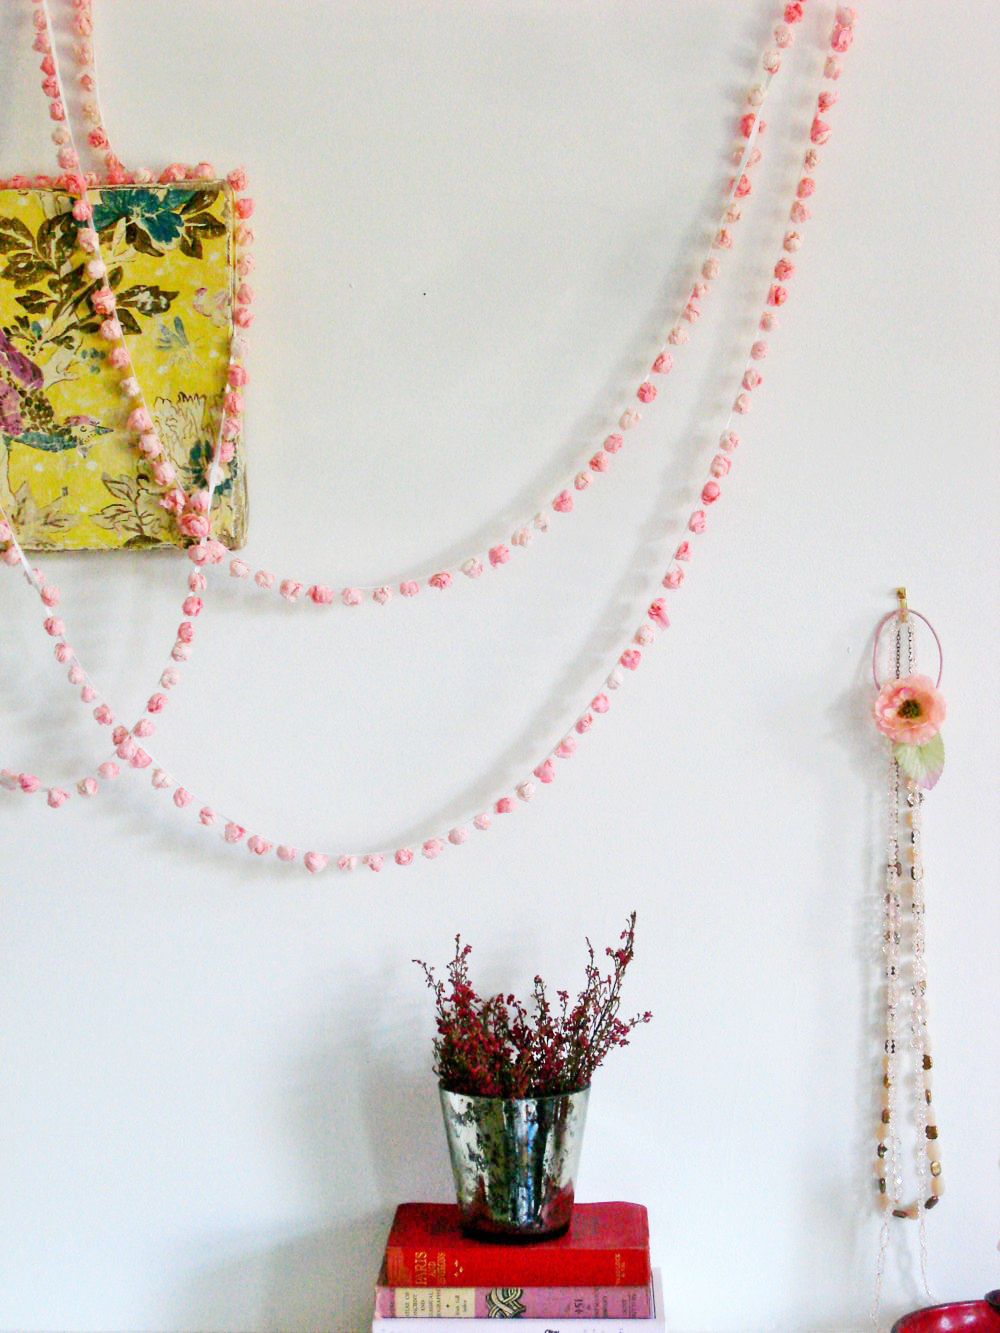 Faded pink garland